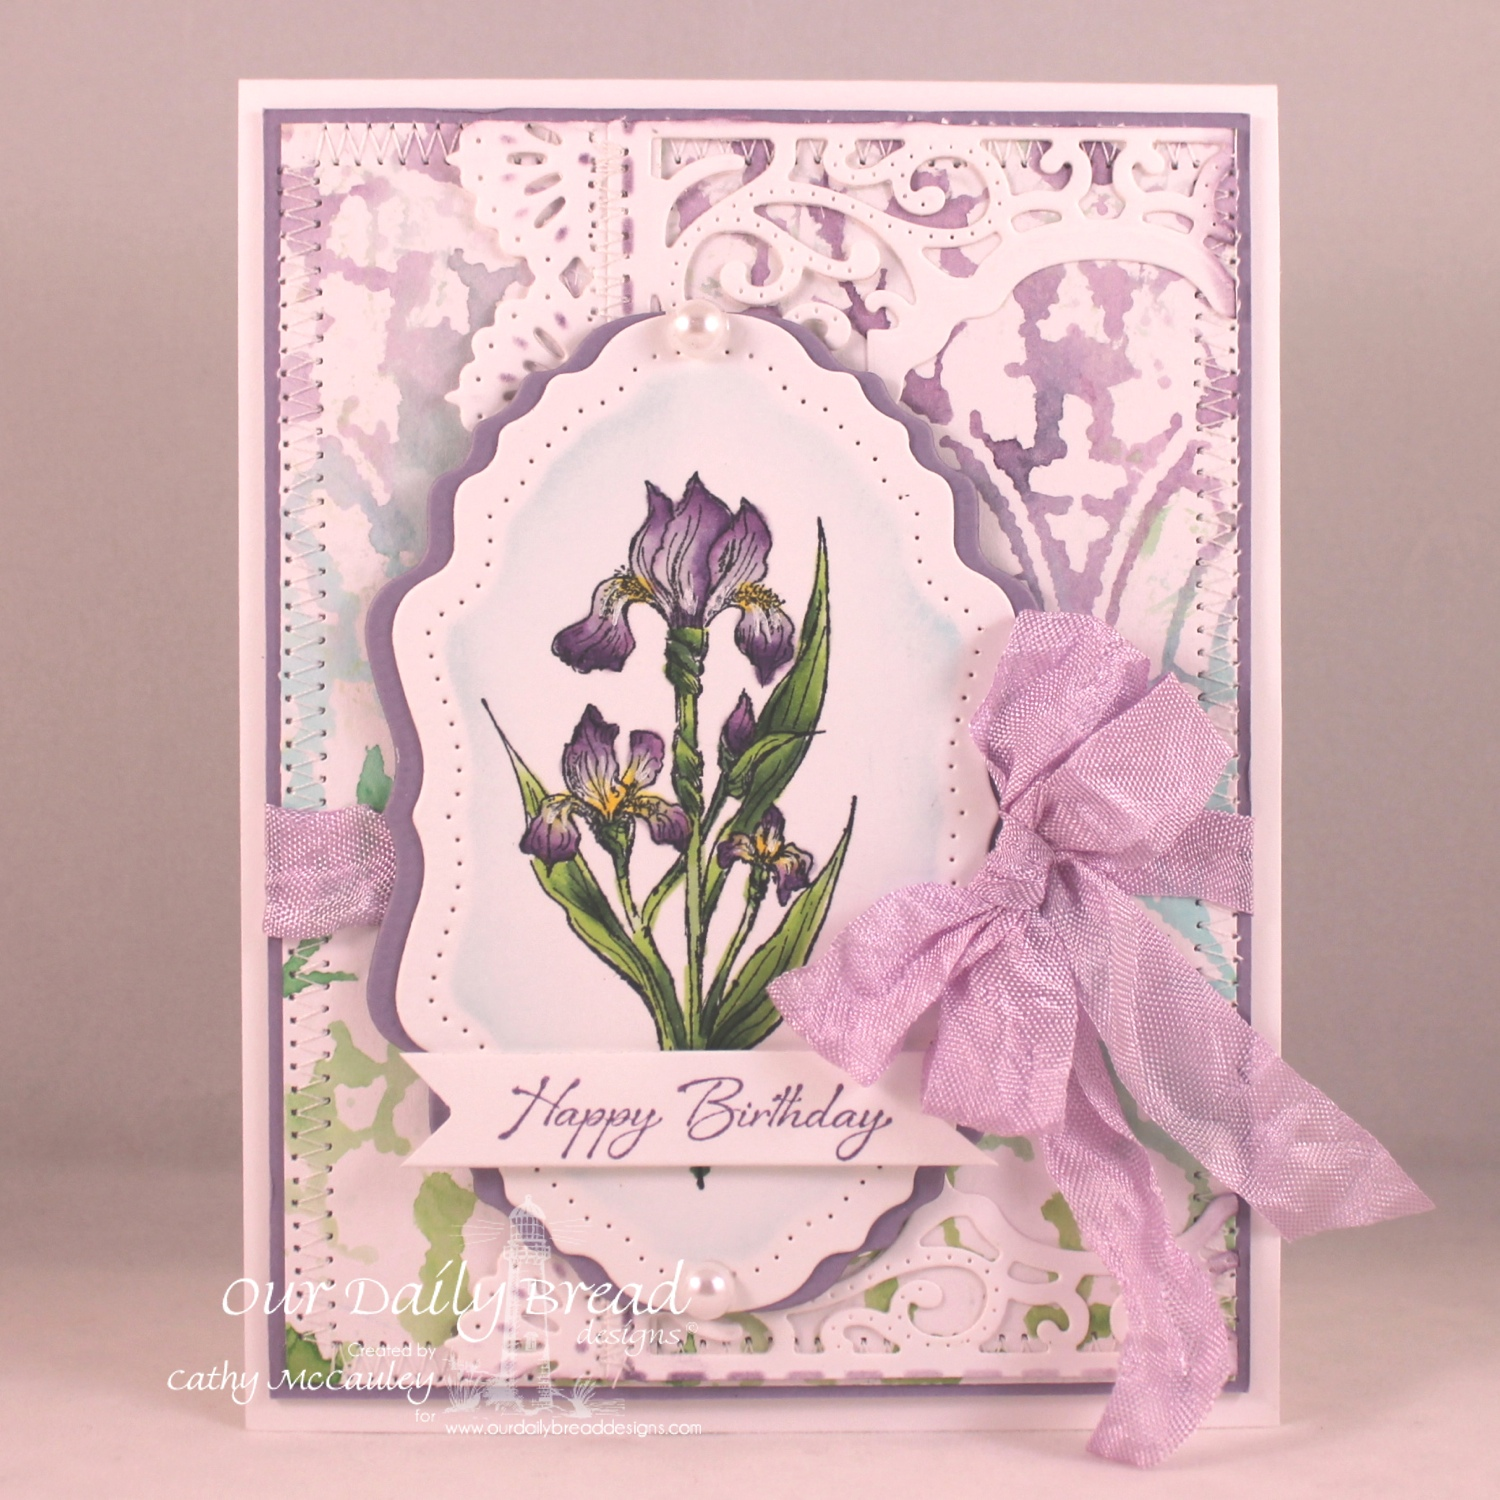 Stamps - Our Daily Bread Designs Iris, ODBD Custom VIntage Flourish Pattern Die, ODBD Custom Beautiful Borders Dies